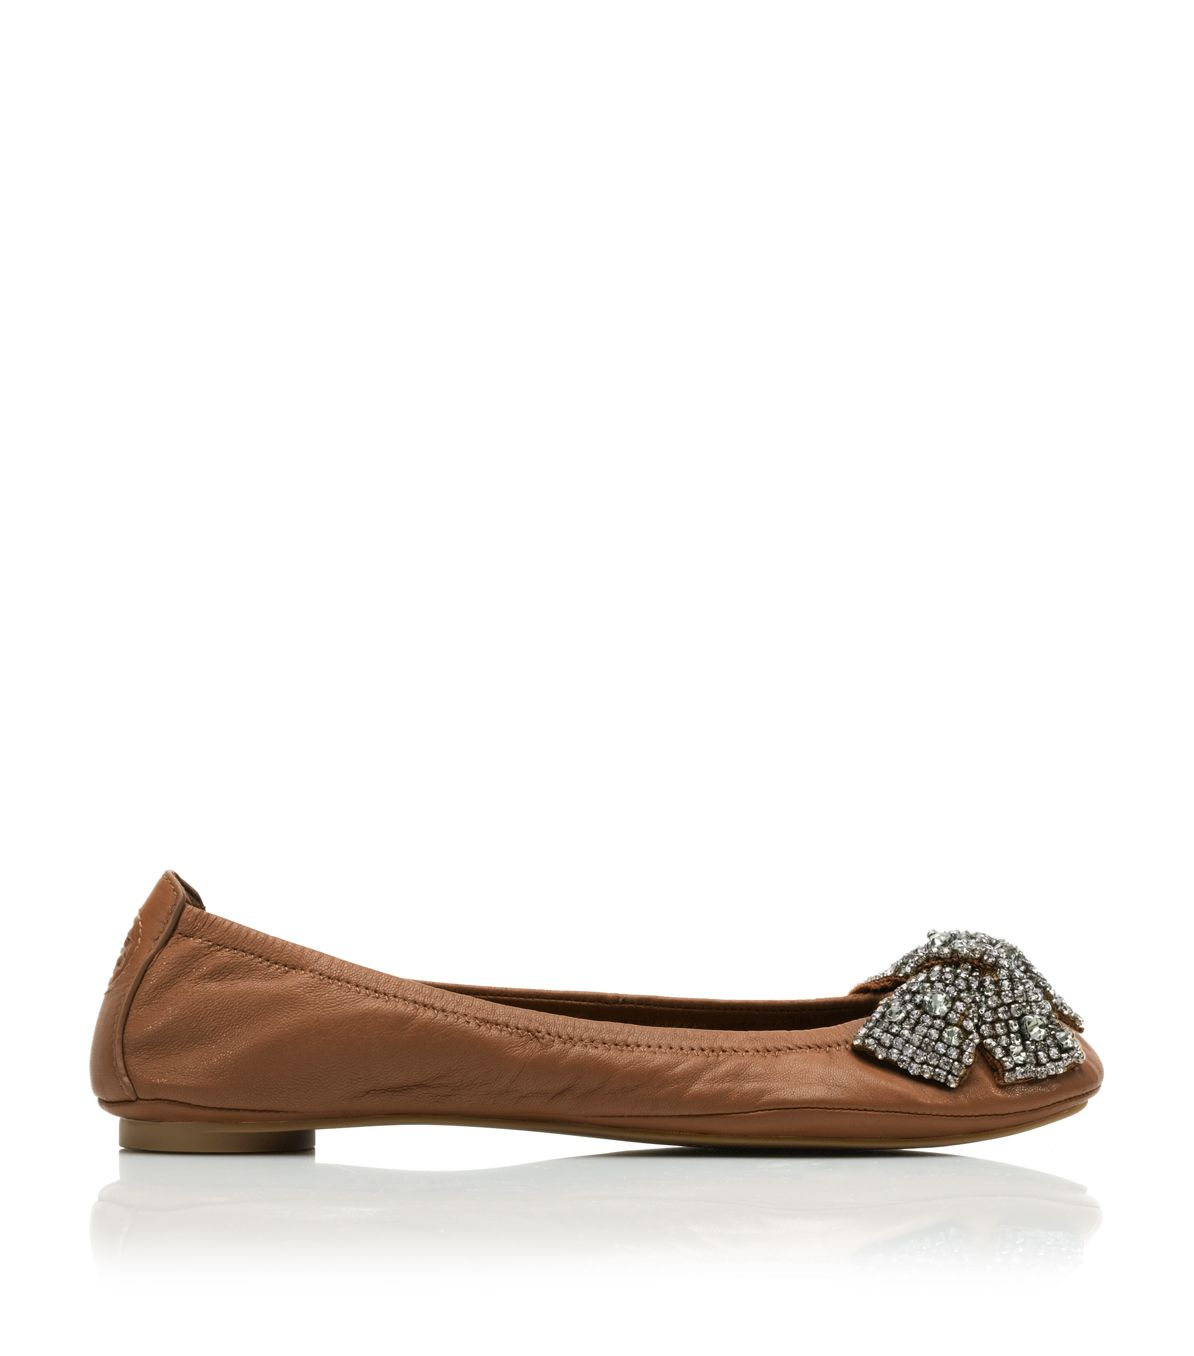 24134bb8f2d0 ... discount code for tory burch leather eddie bow ballet flat in brown lyst  8dbd7 853cb